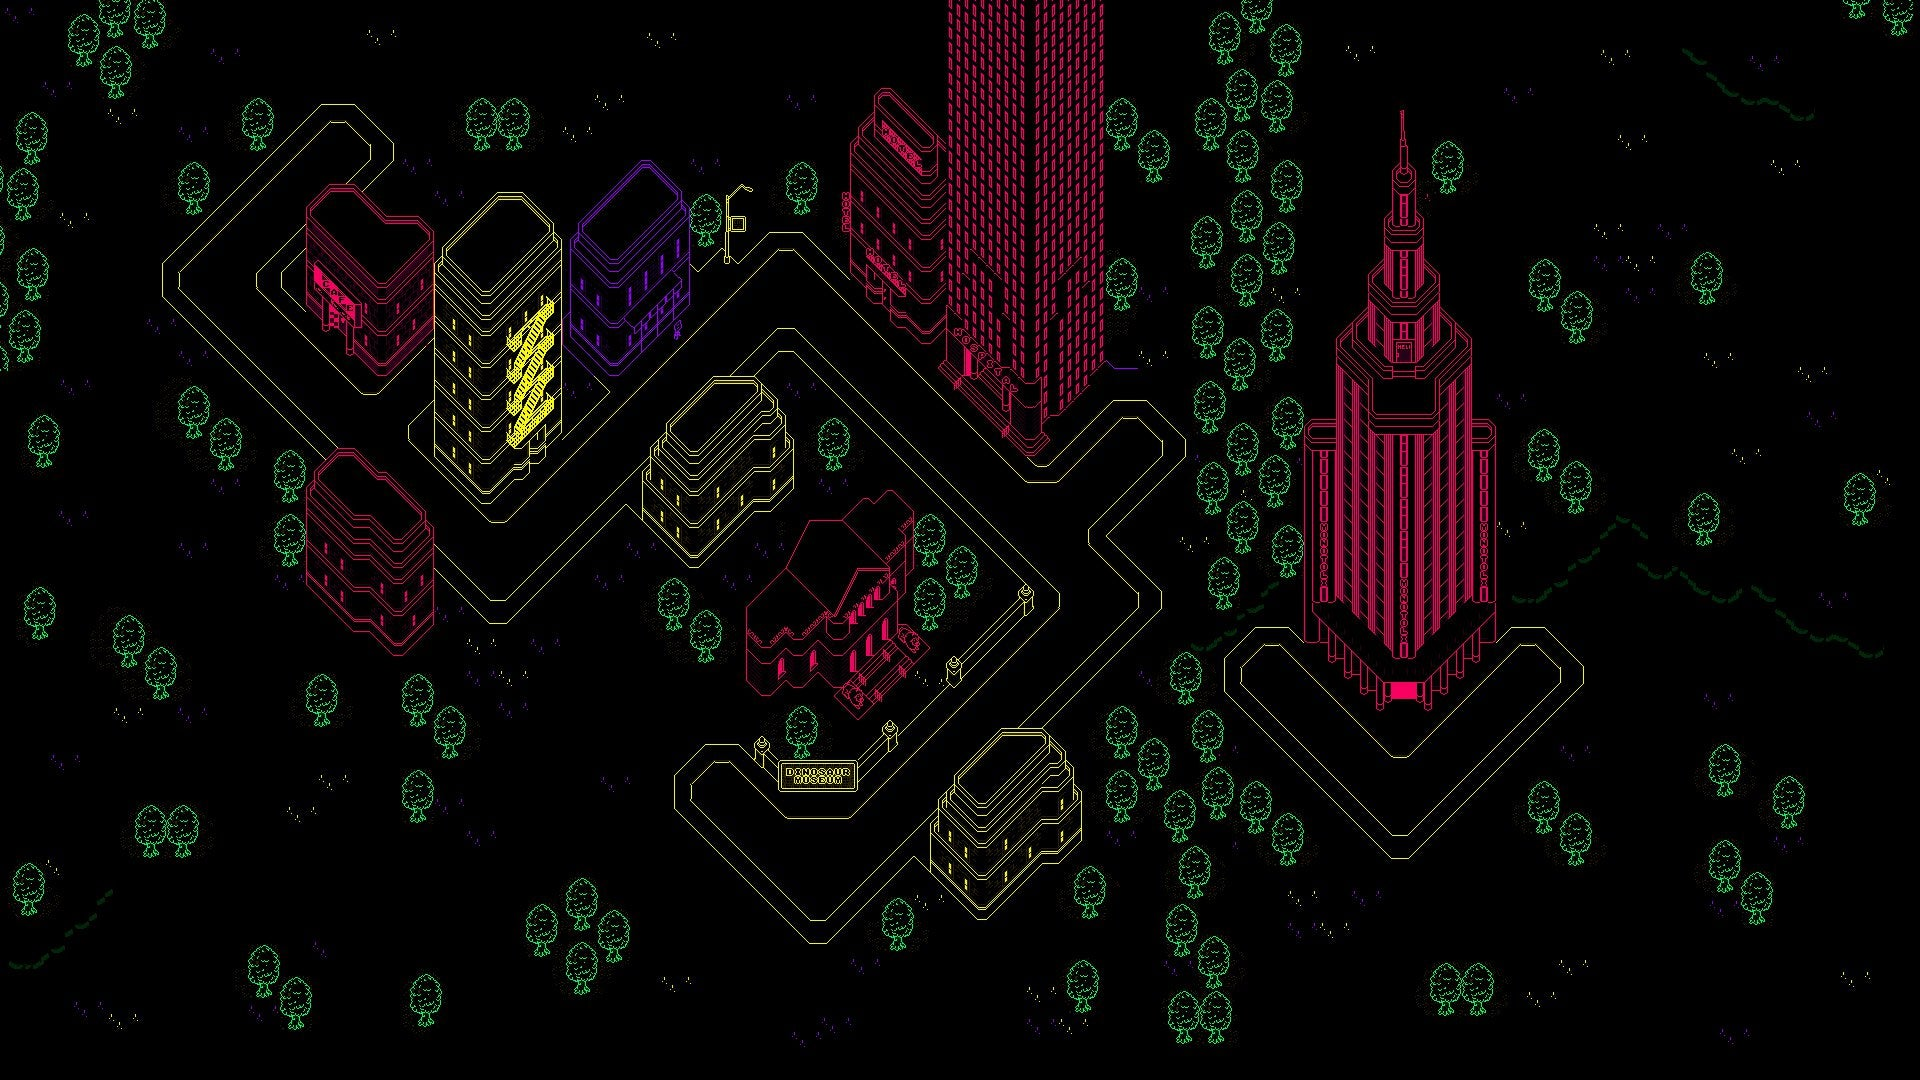 The moonside map from Earthbound